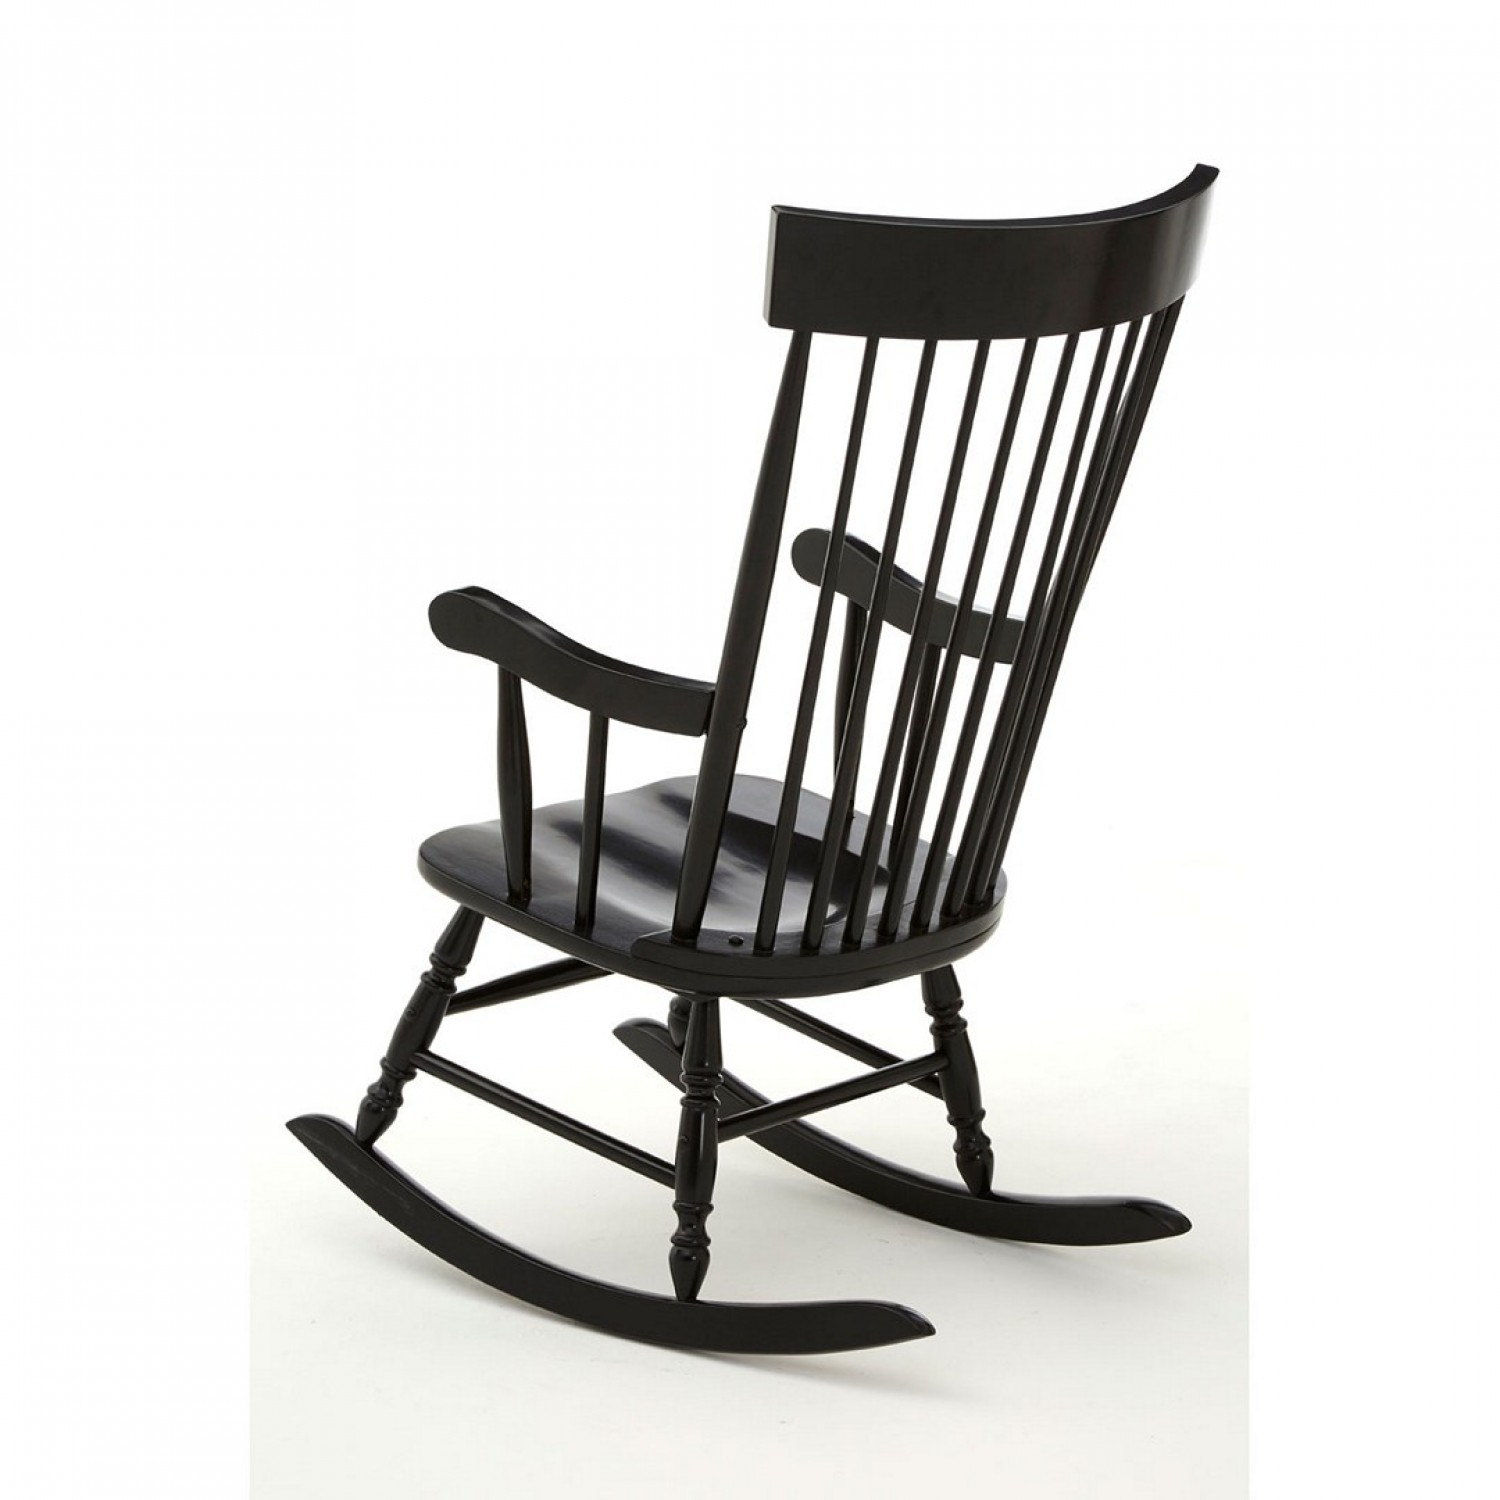 Own This Slat Rocking Chair, Black Colour, Plywood Pertaining To Black Rubberwood Rocking Chairs (#12 of 20)